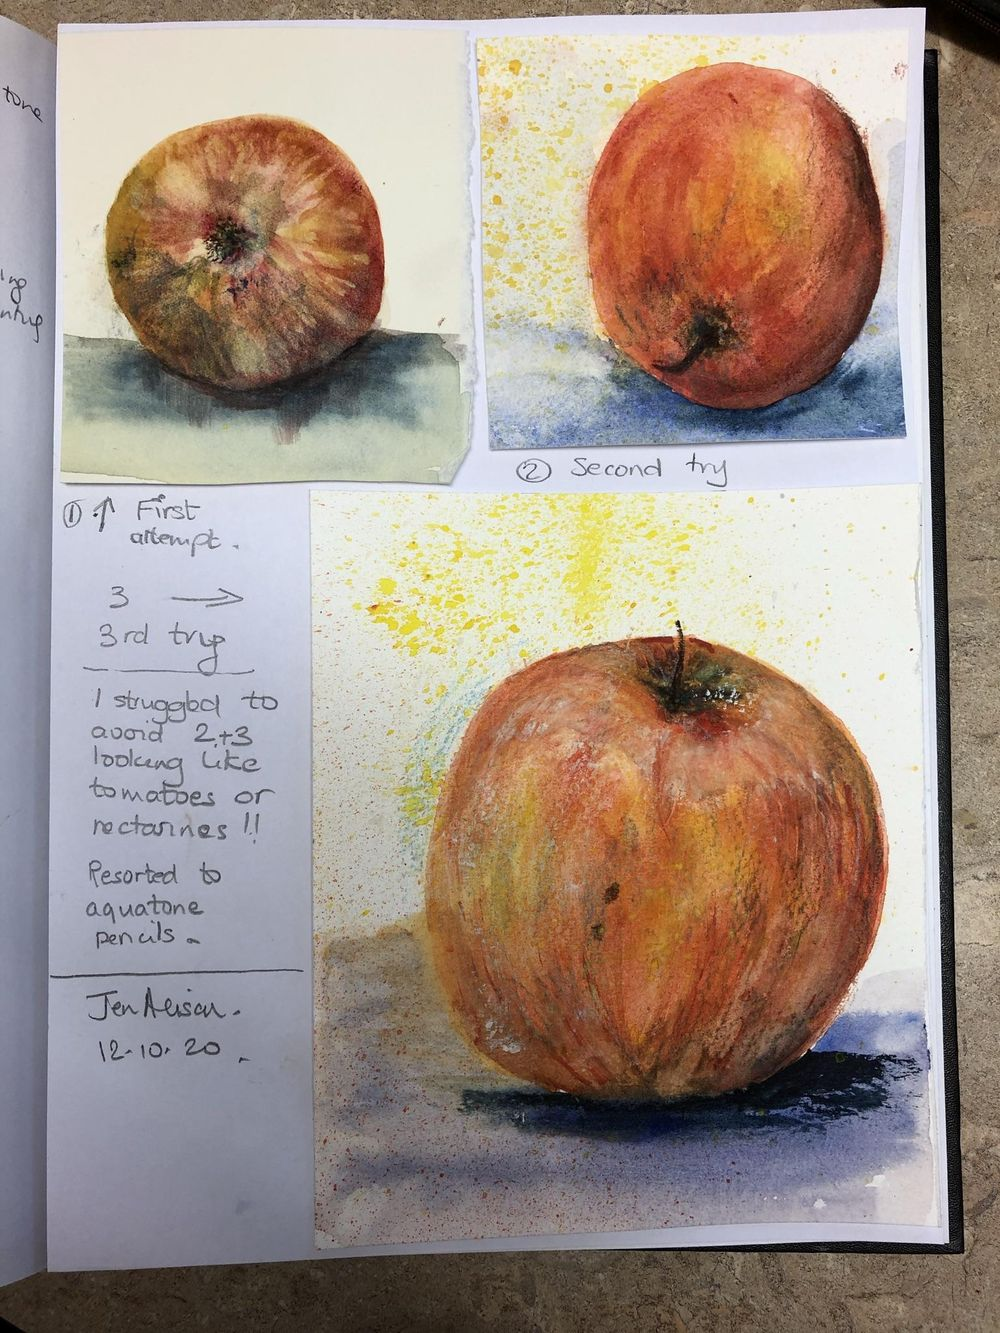 Apples - image 2 - student project